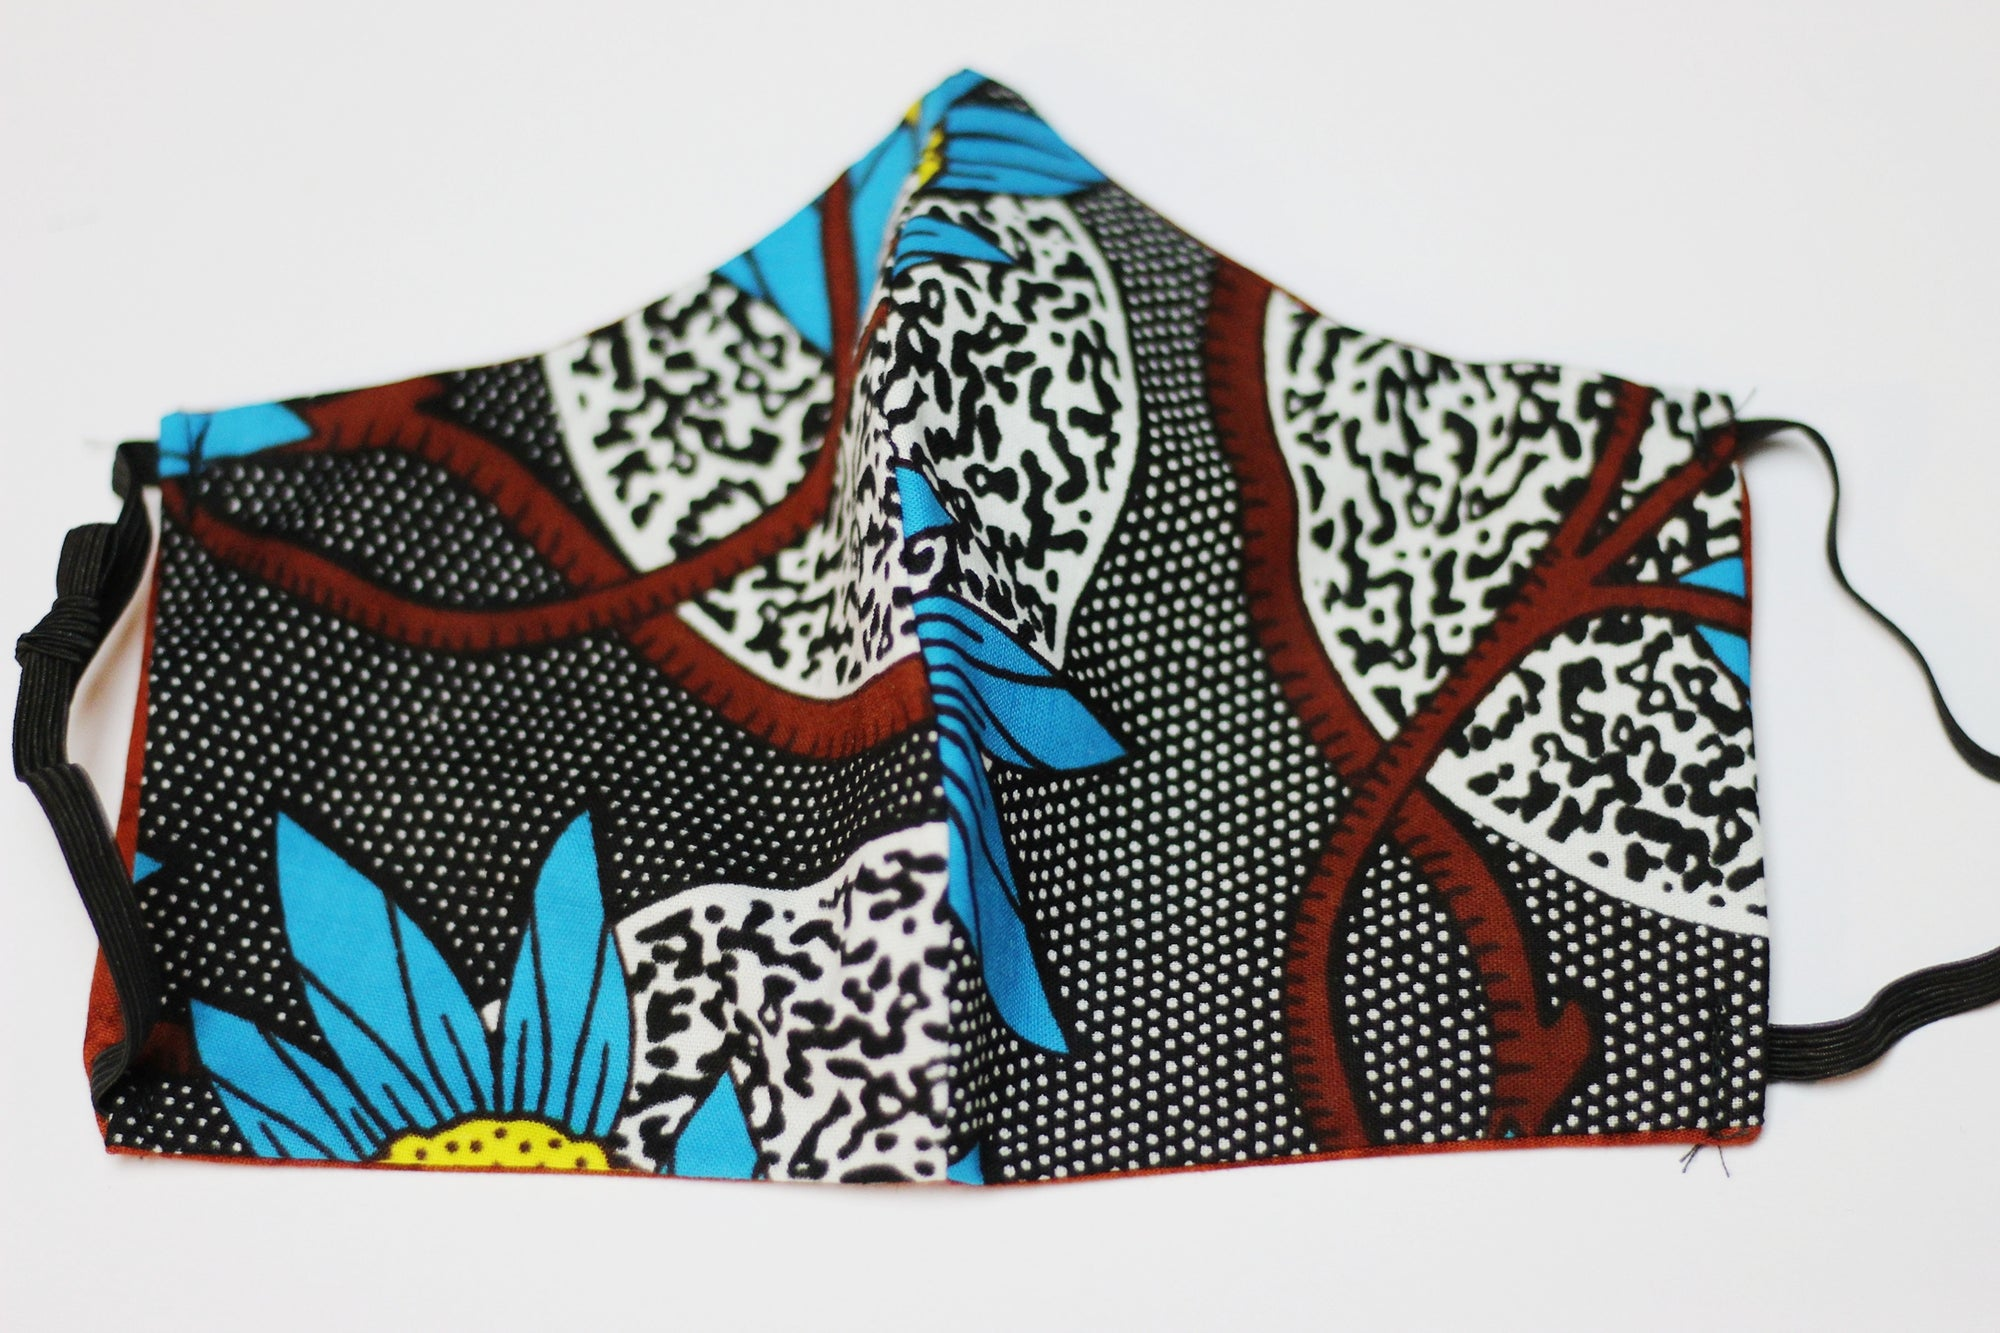 African Print Face Mask - Teal/Black/White/Yellow Floral Print